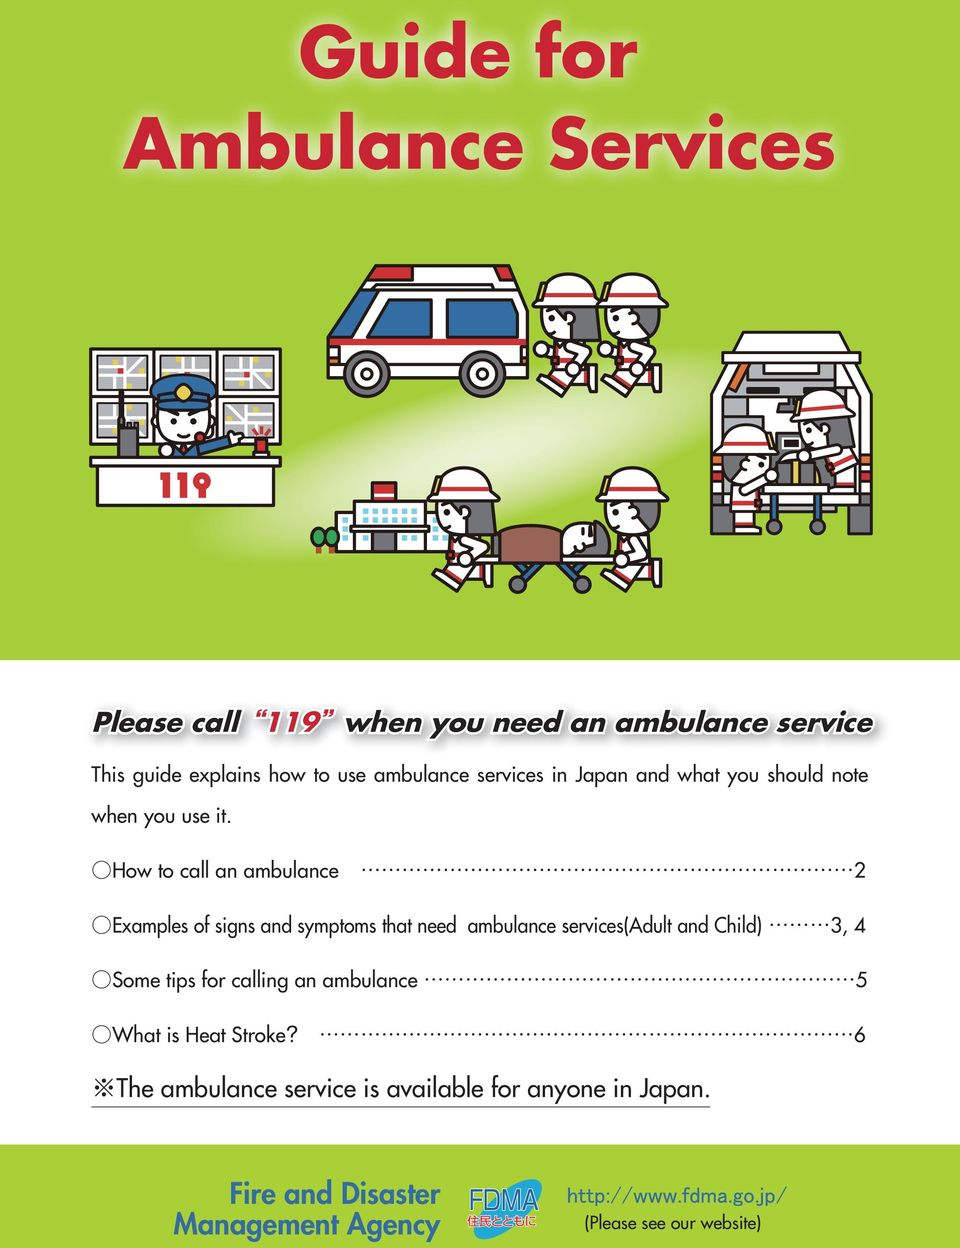 How to call an ambulance 2 Examples of signs and symptoms that need ambulance services(adult and Child) 3, 4 Some